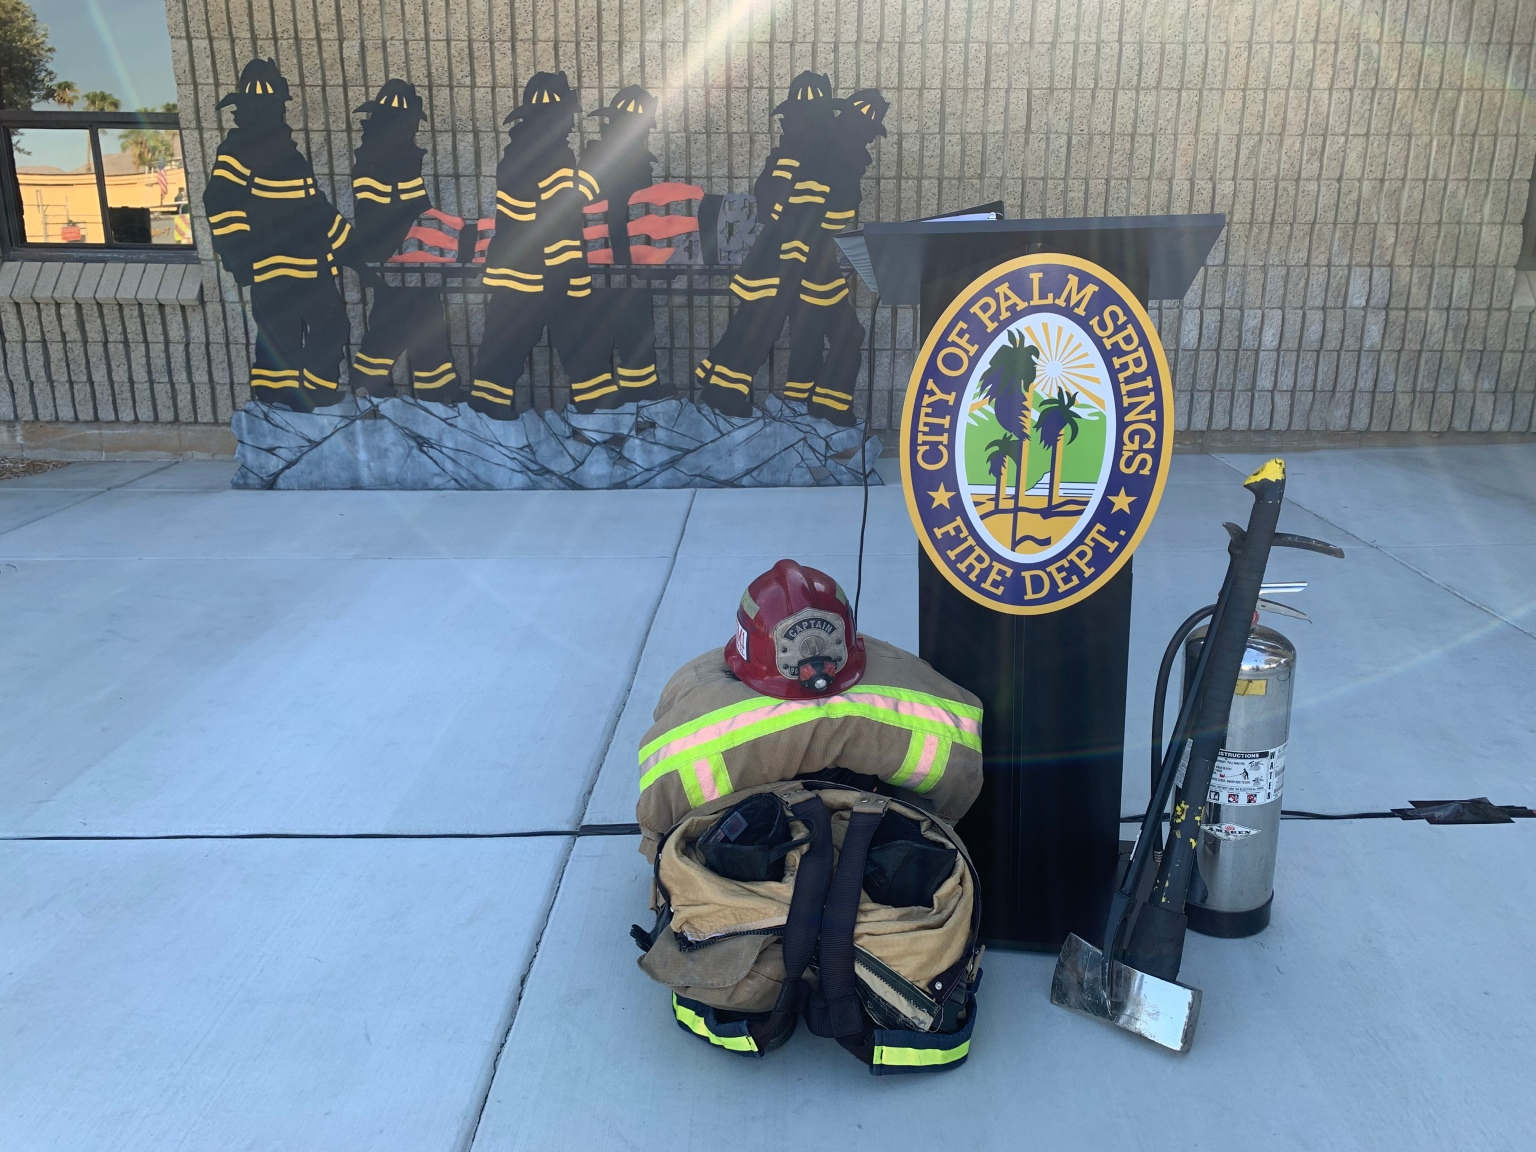 Palm Springs Fire Department Shares Story of 9/11 With Younger Generations